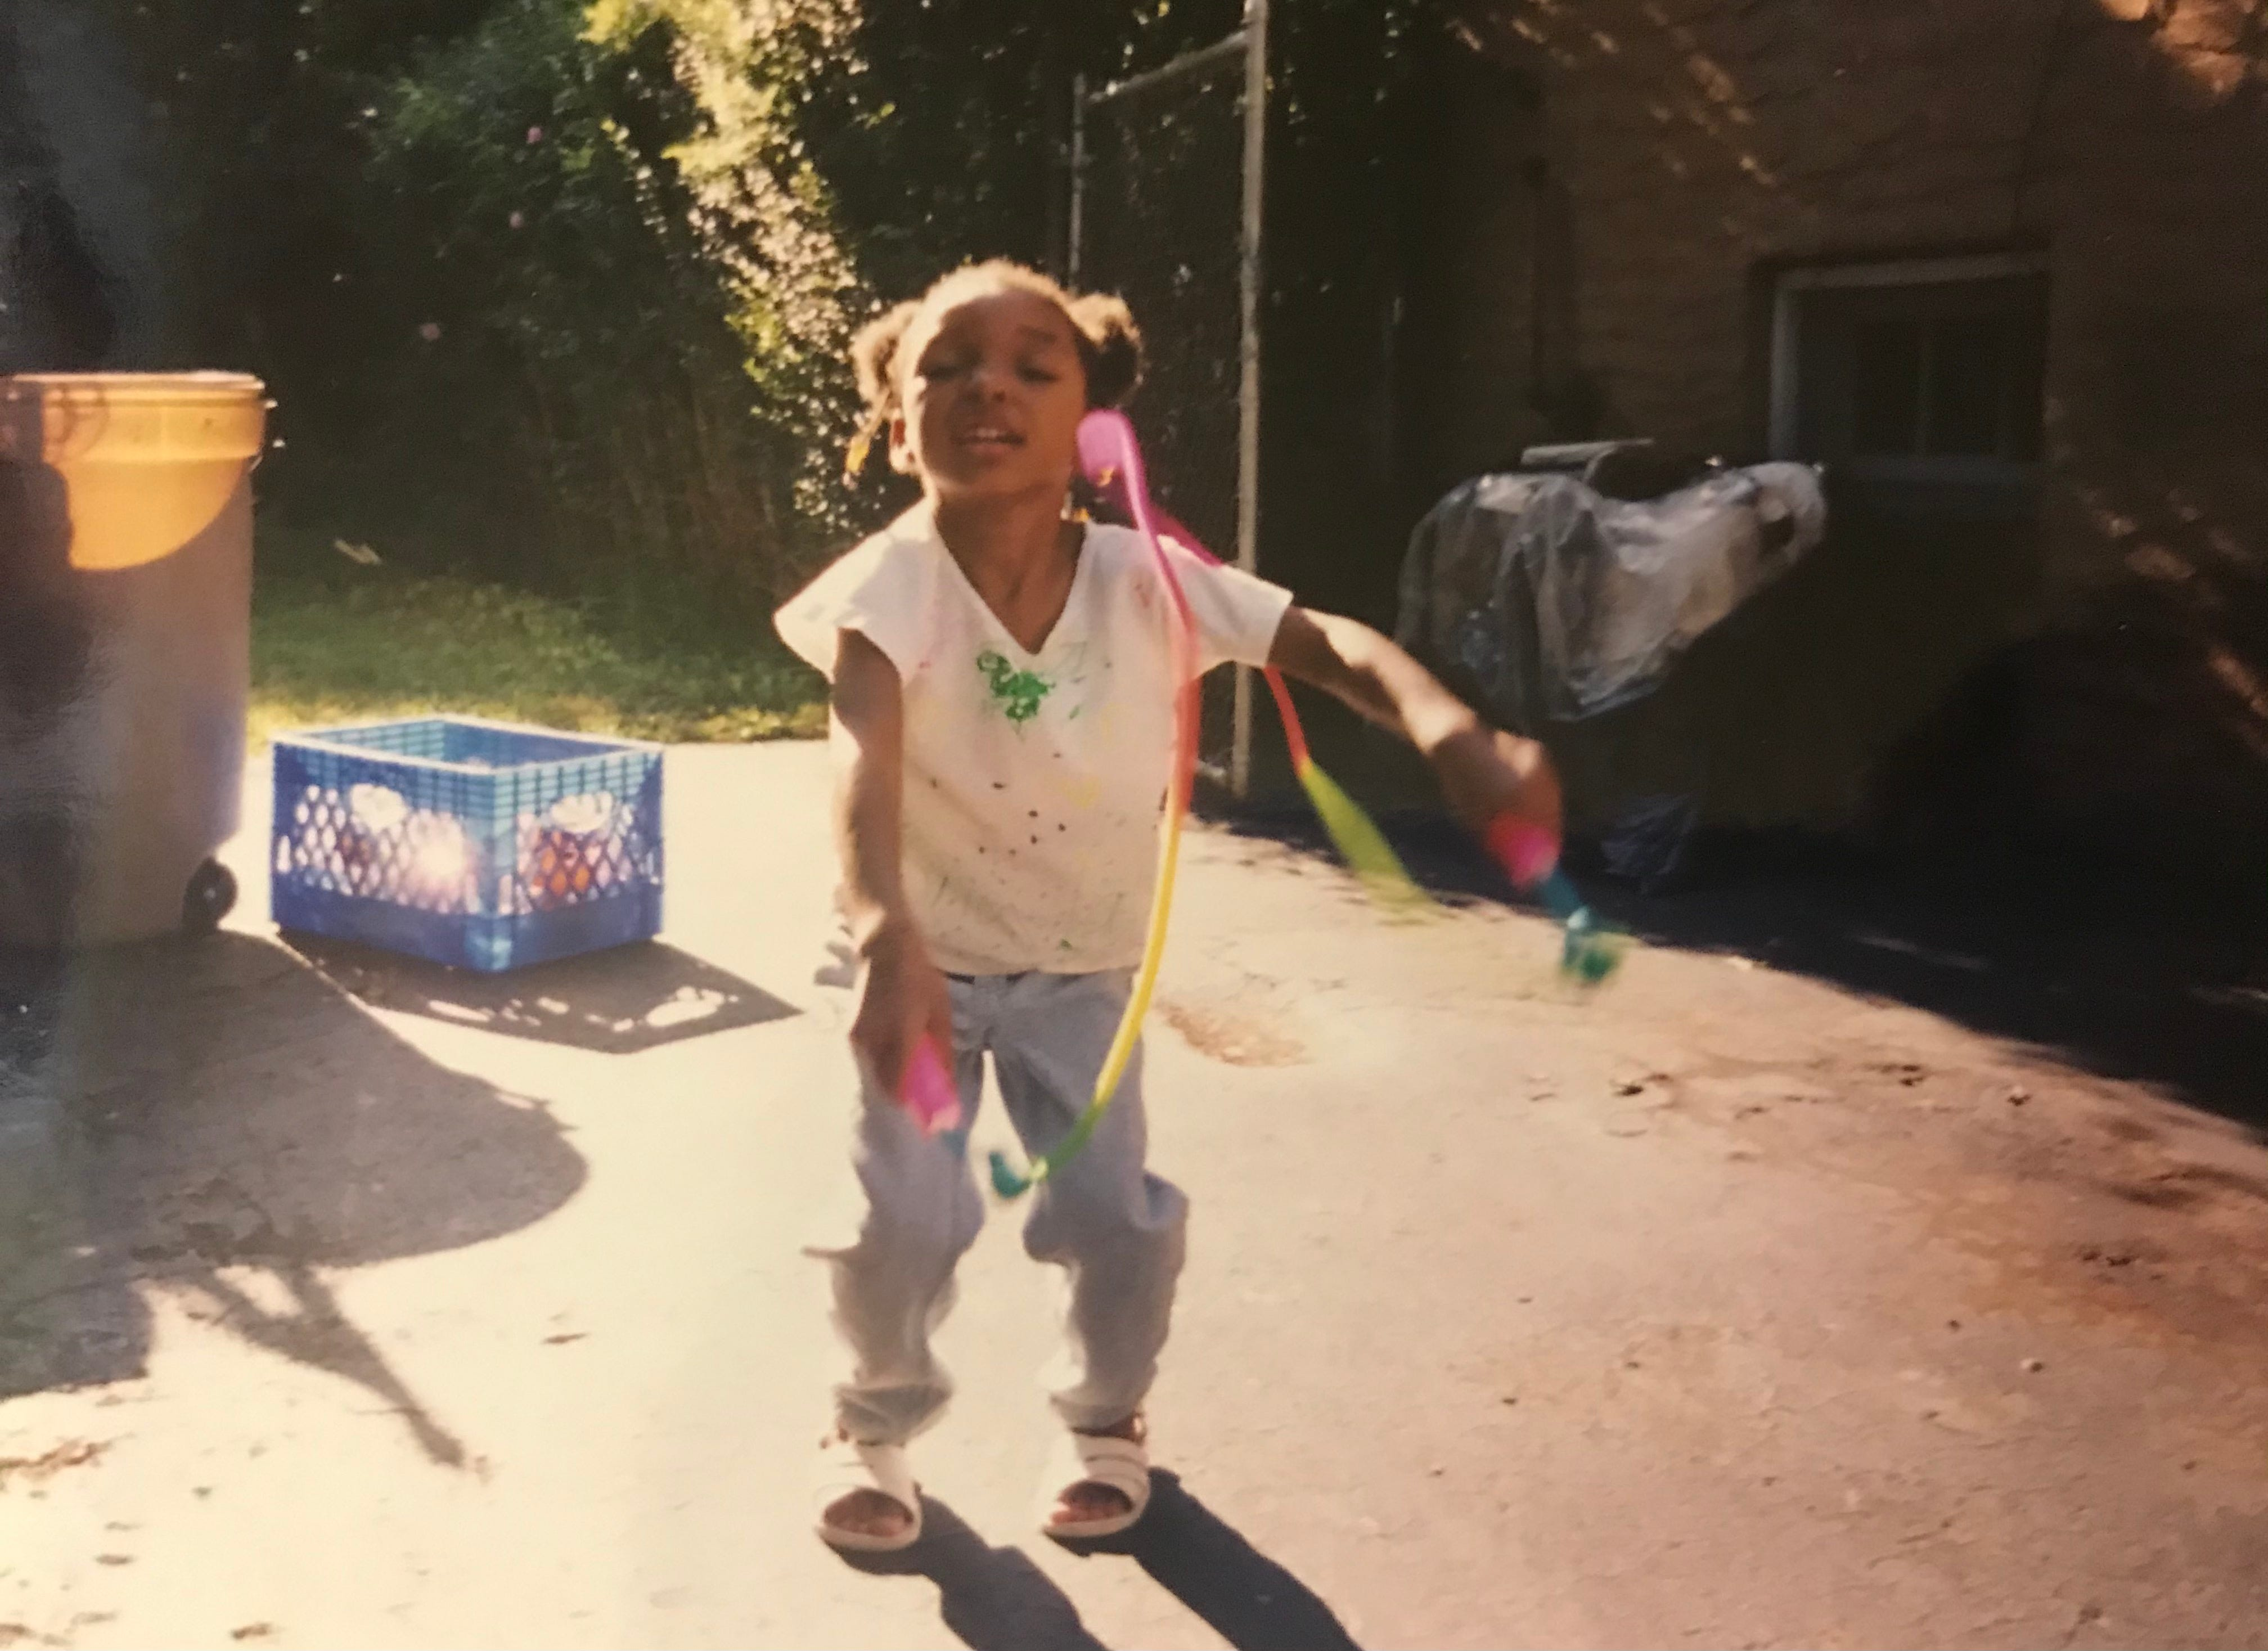 Shaylah Brown jumping rope in the backyard of her grandparents' house in 1999.